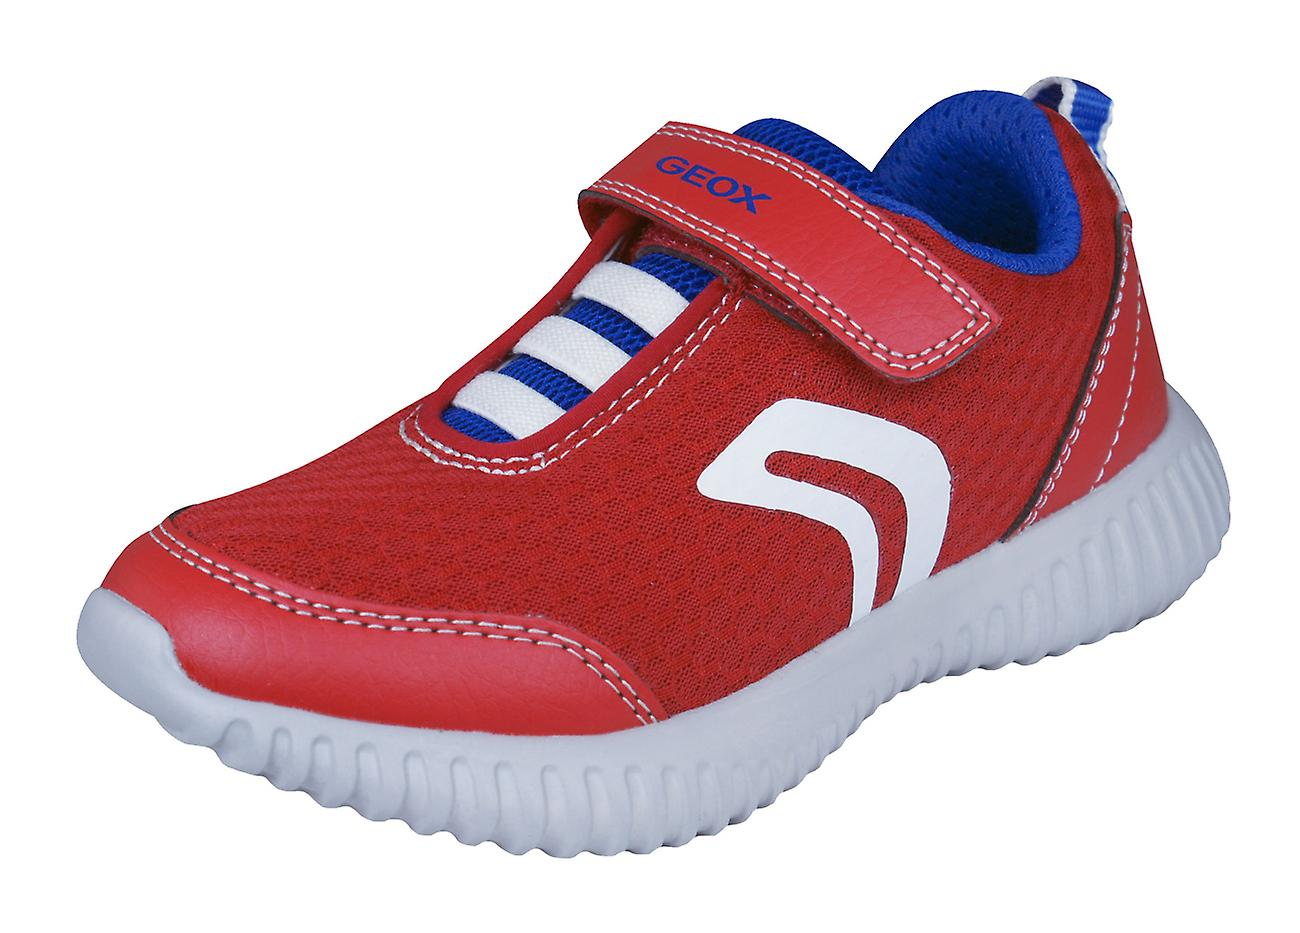 Geox Boys Casual Trainers J Waviness B.A Casual Boys Shoes - Red dd768f